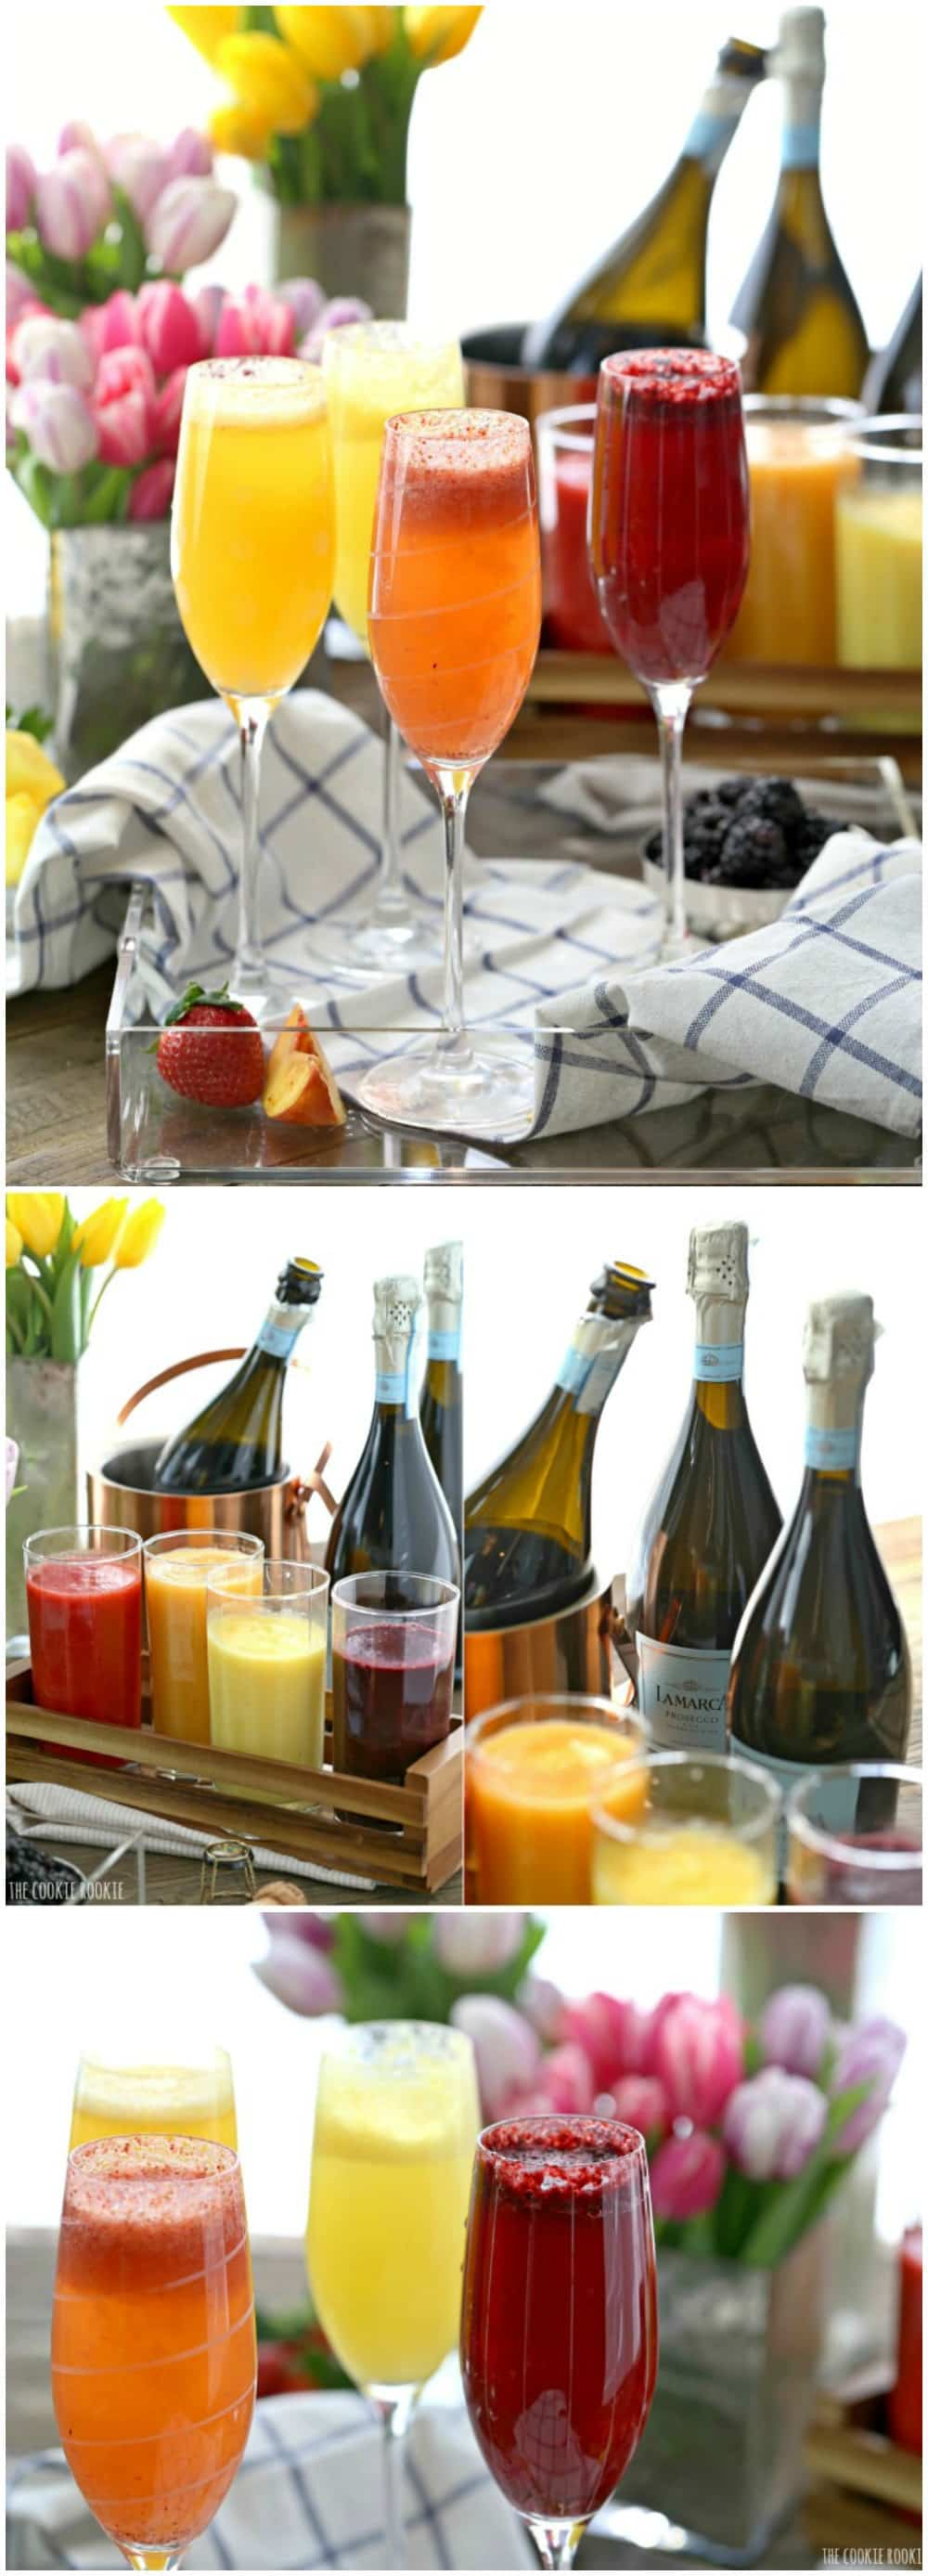 Homemade Bellini Bar made easy with fruit purees and Prosecco! You can use sparkling water for a tasty non-alcoholic brunch or breakfast. So fun and tasty!   The Cookie Rookie